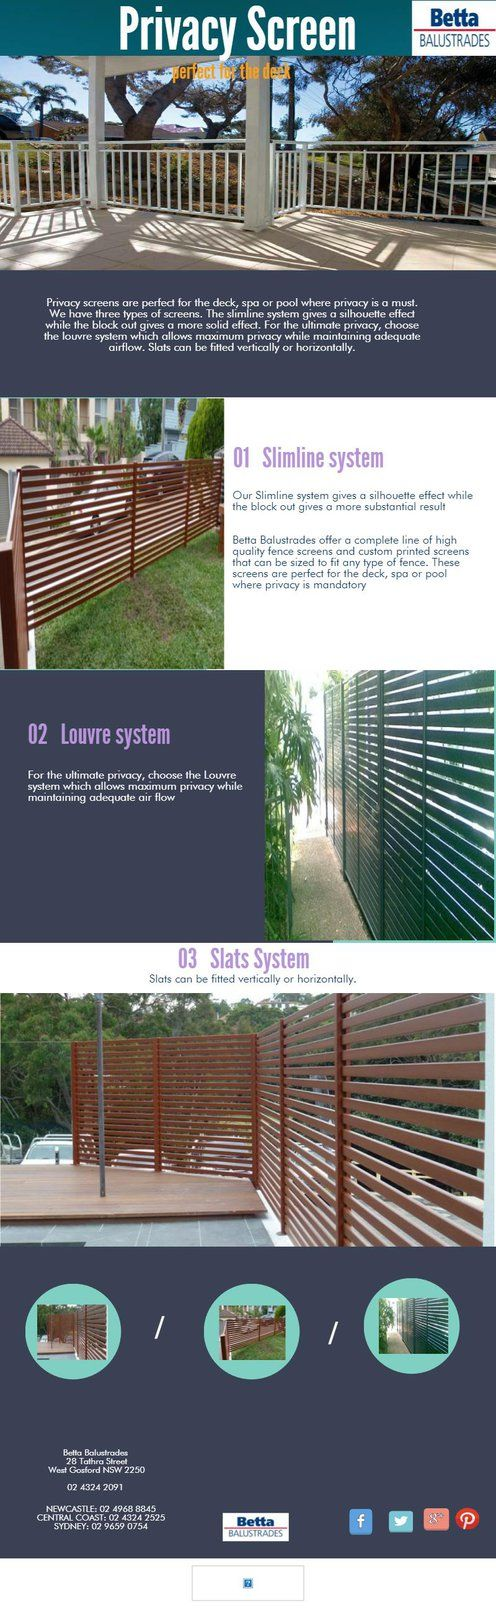 privacy-system BETTA BALUSTRADES by bettabalustrades